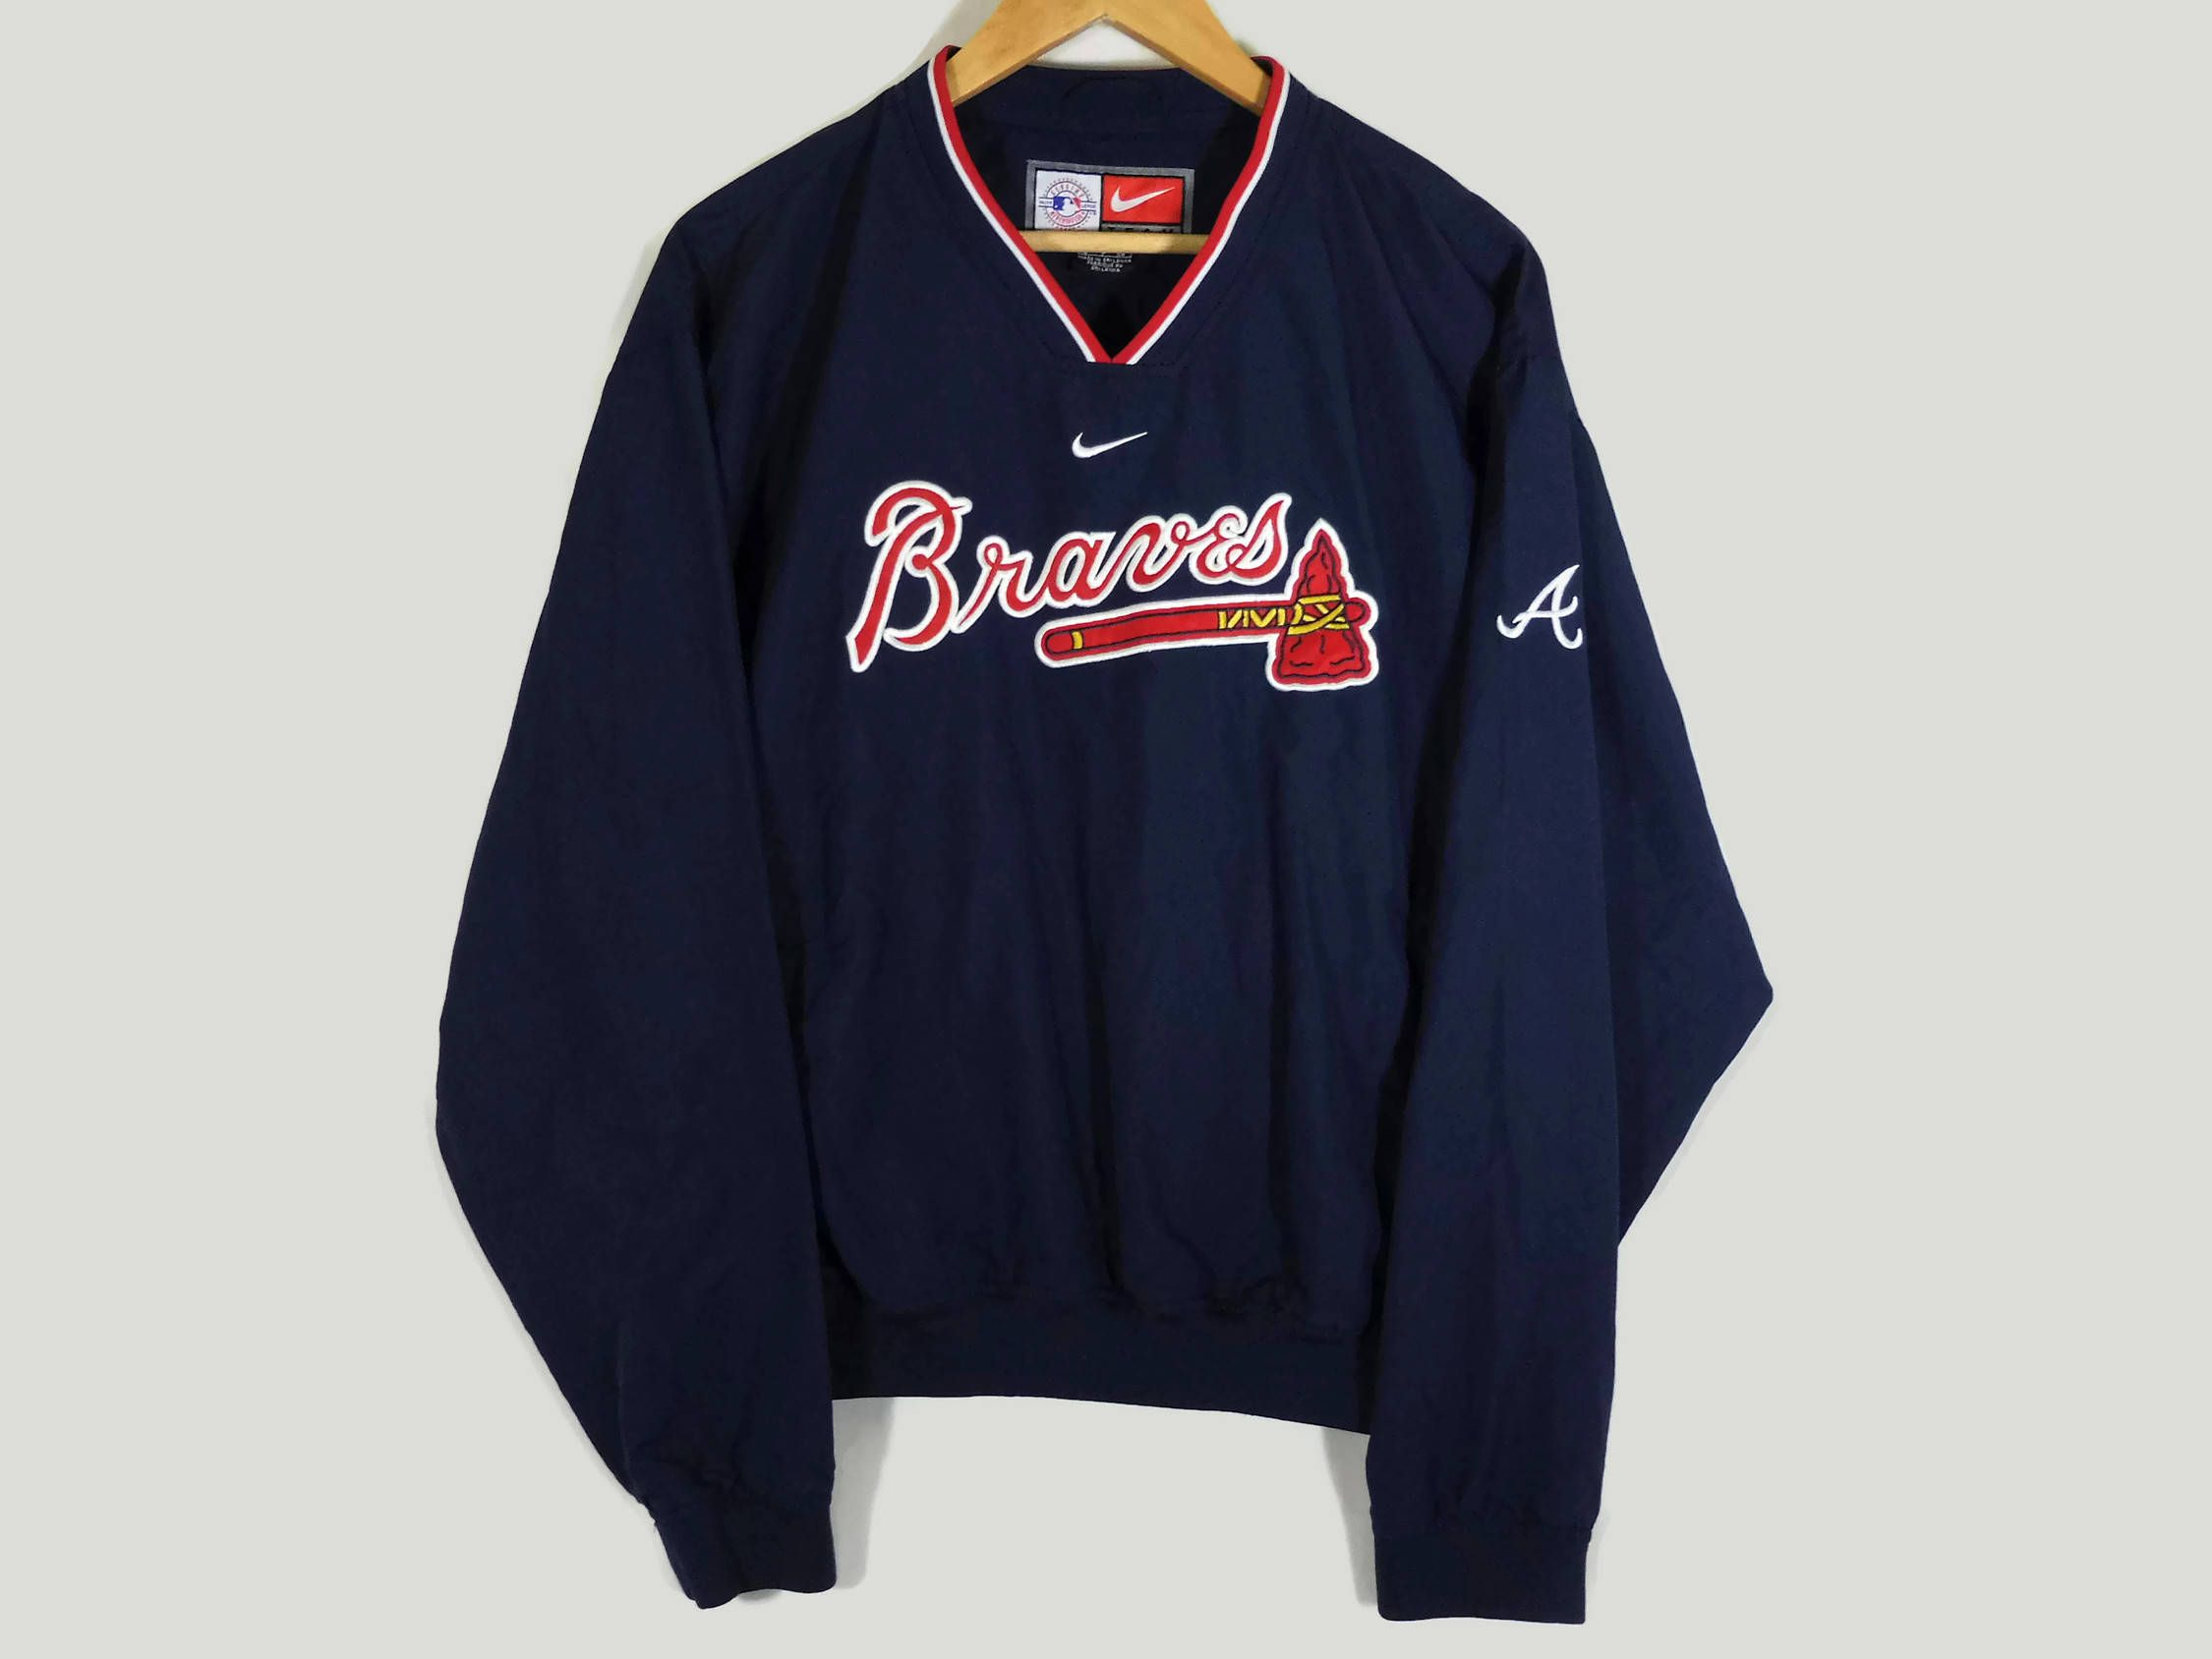 Vtg Nike Atlanta Braves Warm Up Jacket Small Atlanta Braves Windbreaker Braves Baseball Vintage Clothing Vintage Nike Vintage Outfits Atlanta Braves